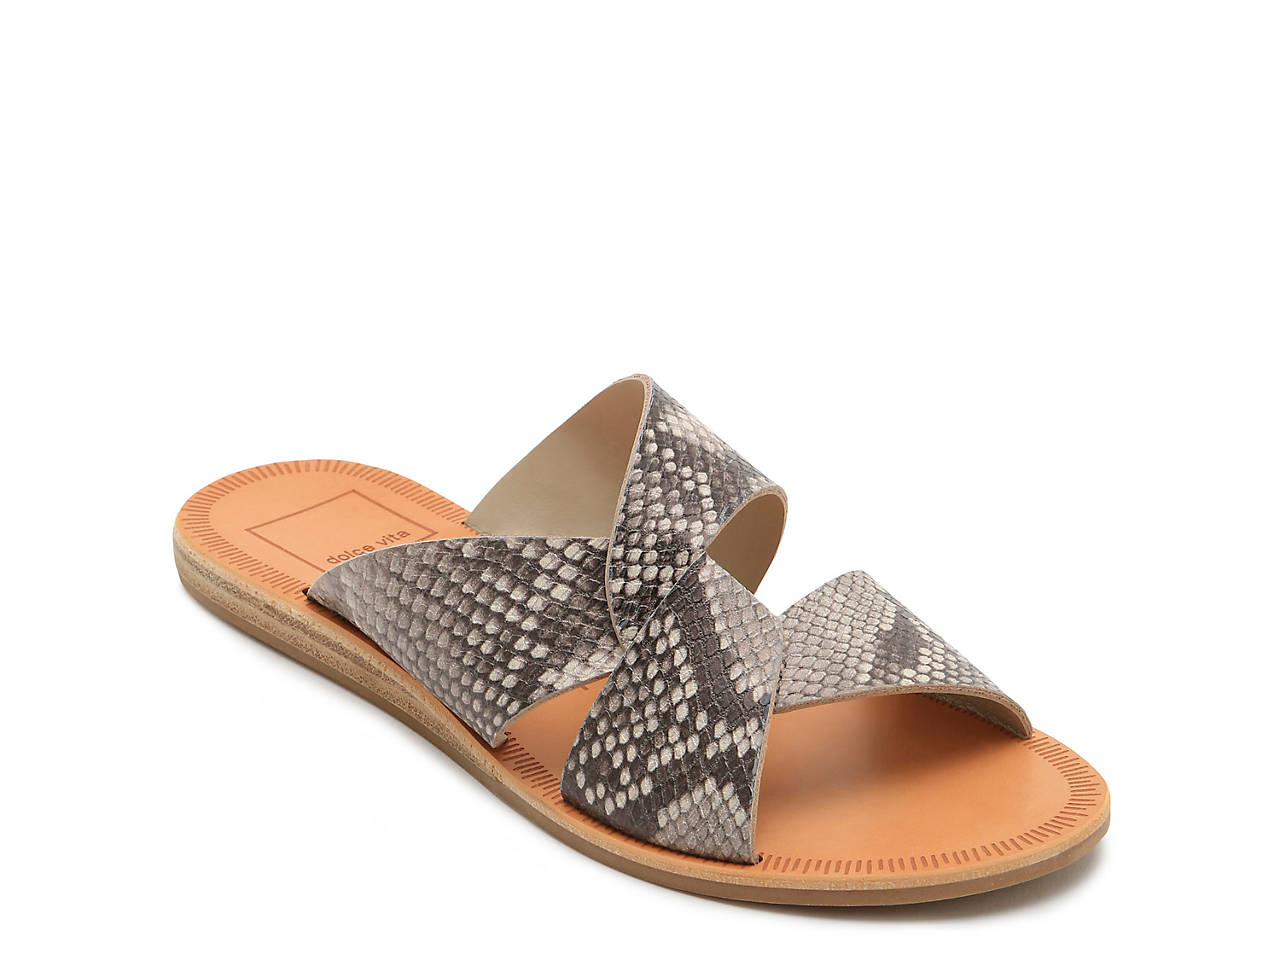 fa198f34bc1 Dolce Vita Derby Sandal Women s Shoes